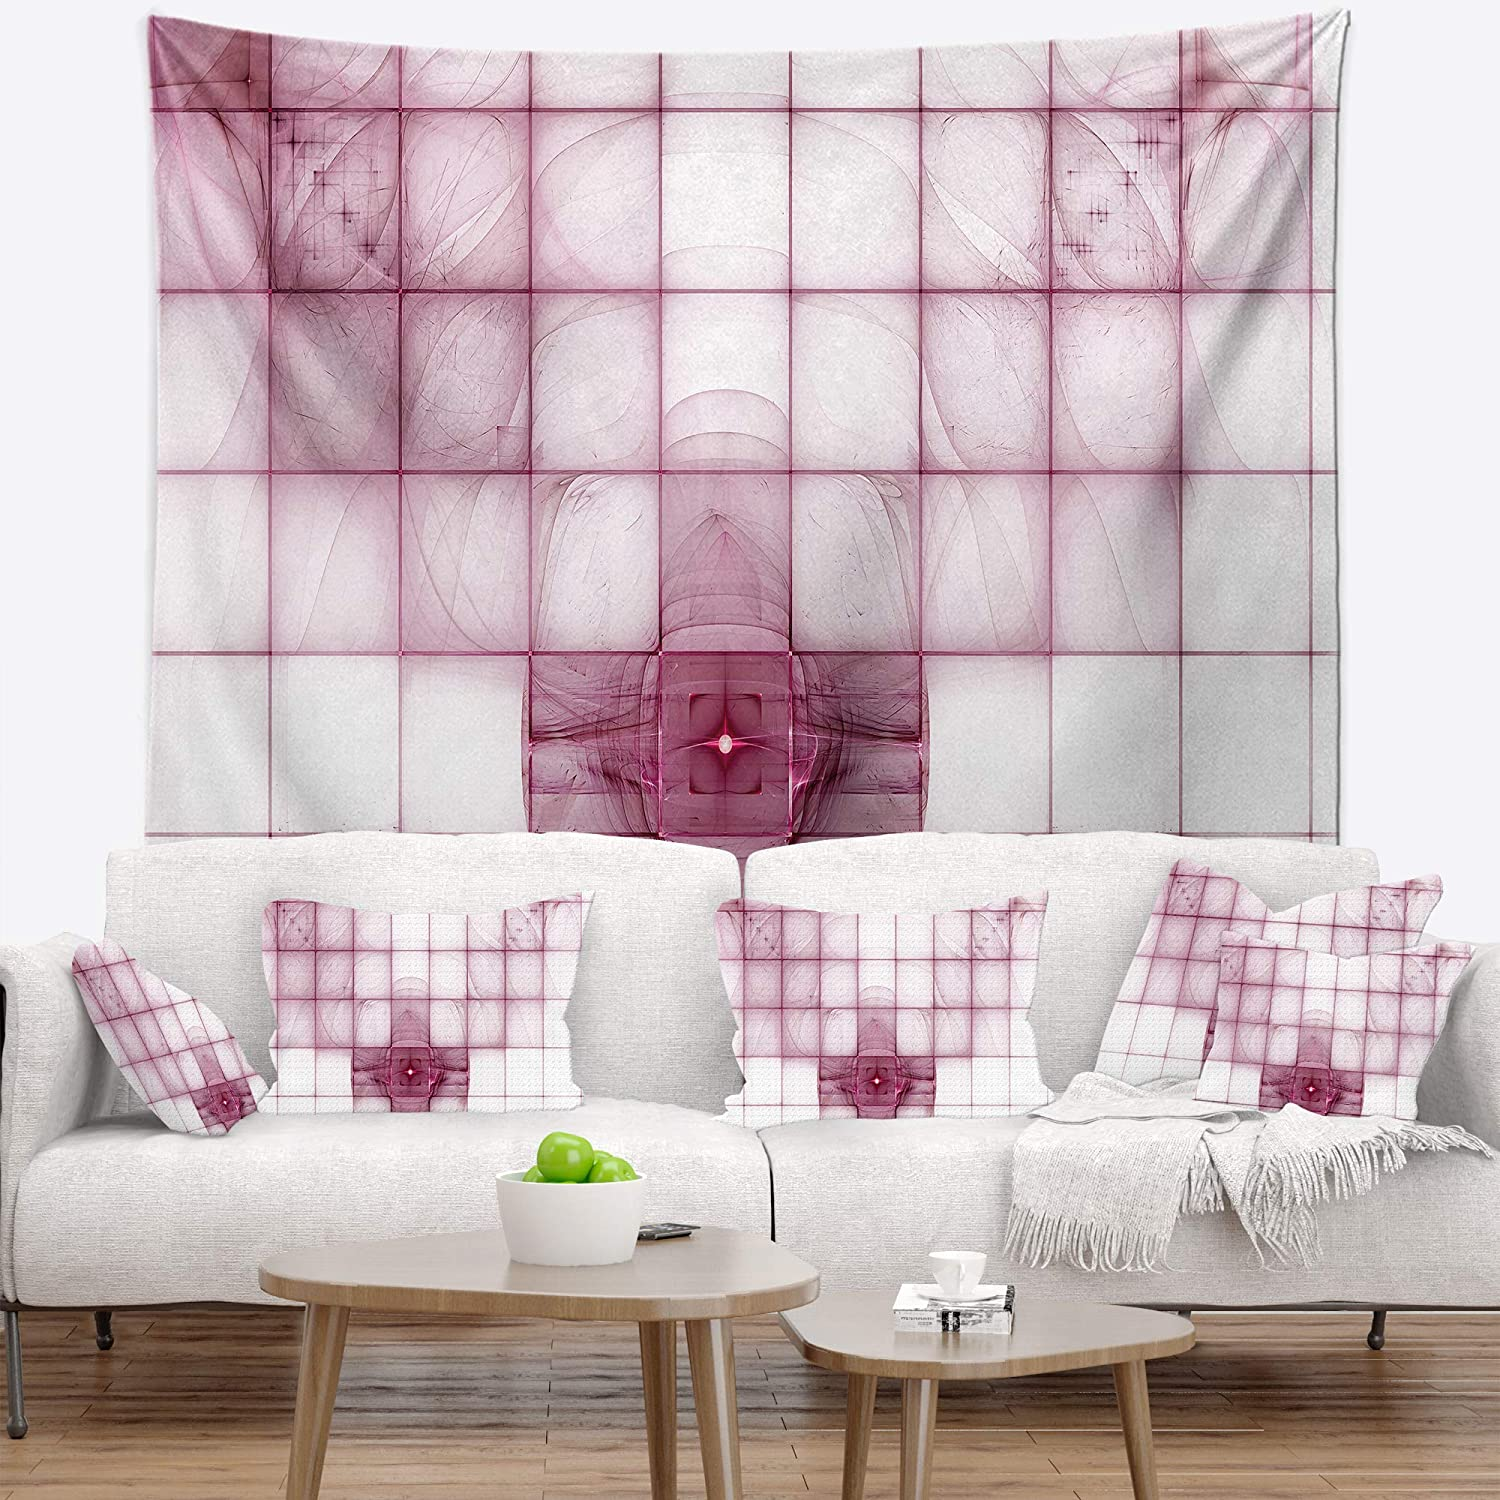 Medium 39 In X 32 In Designart Tap16054 39 32 Purple Bat On Rader Screen Abstract Blanket Décor Art For Home And Office Wall Tapestry Created On Lightweight Polyester Fabric Tapestries Home Décor